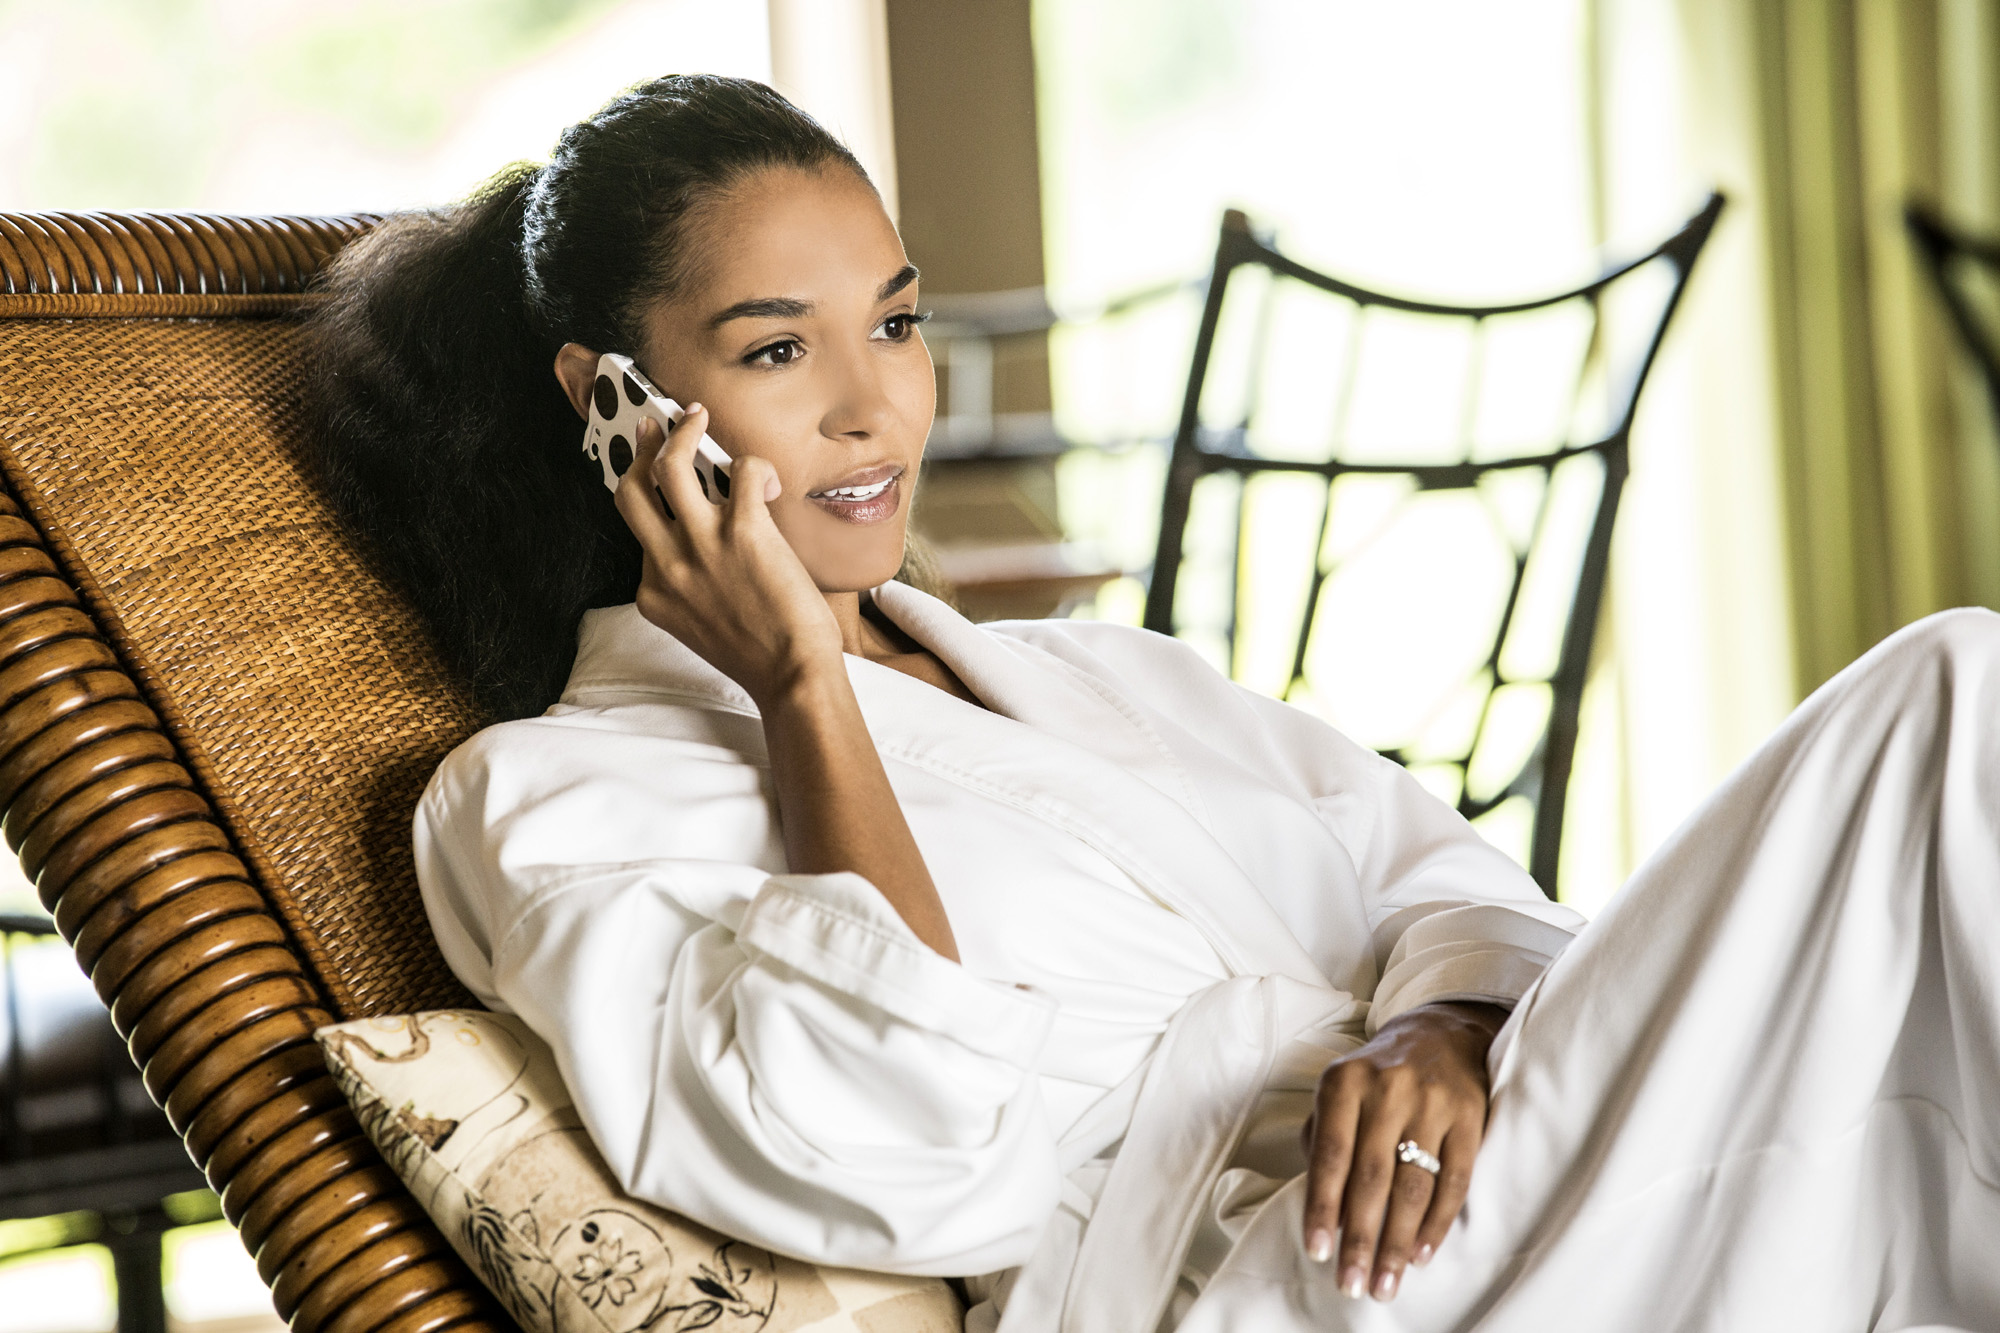 brooklyn sudano movies and tv shows